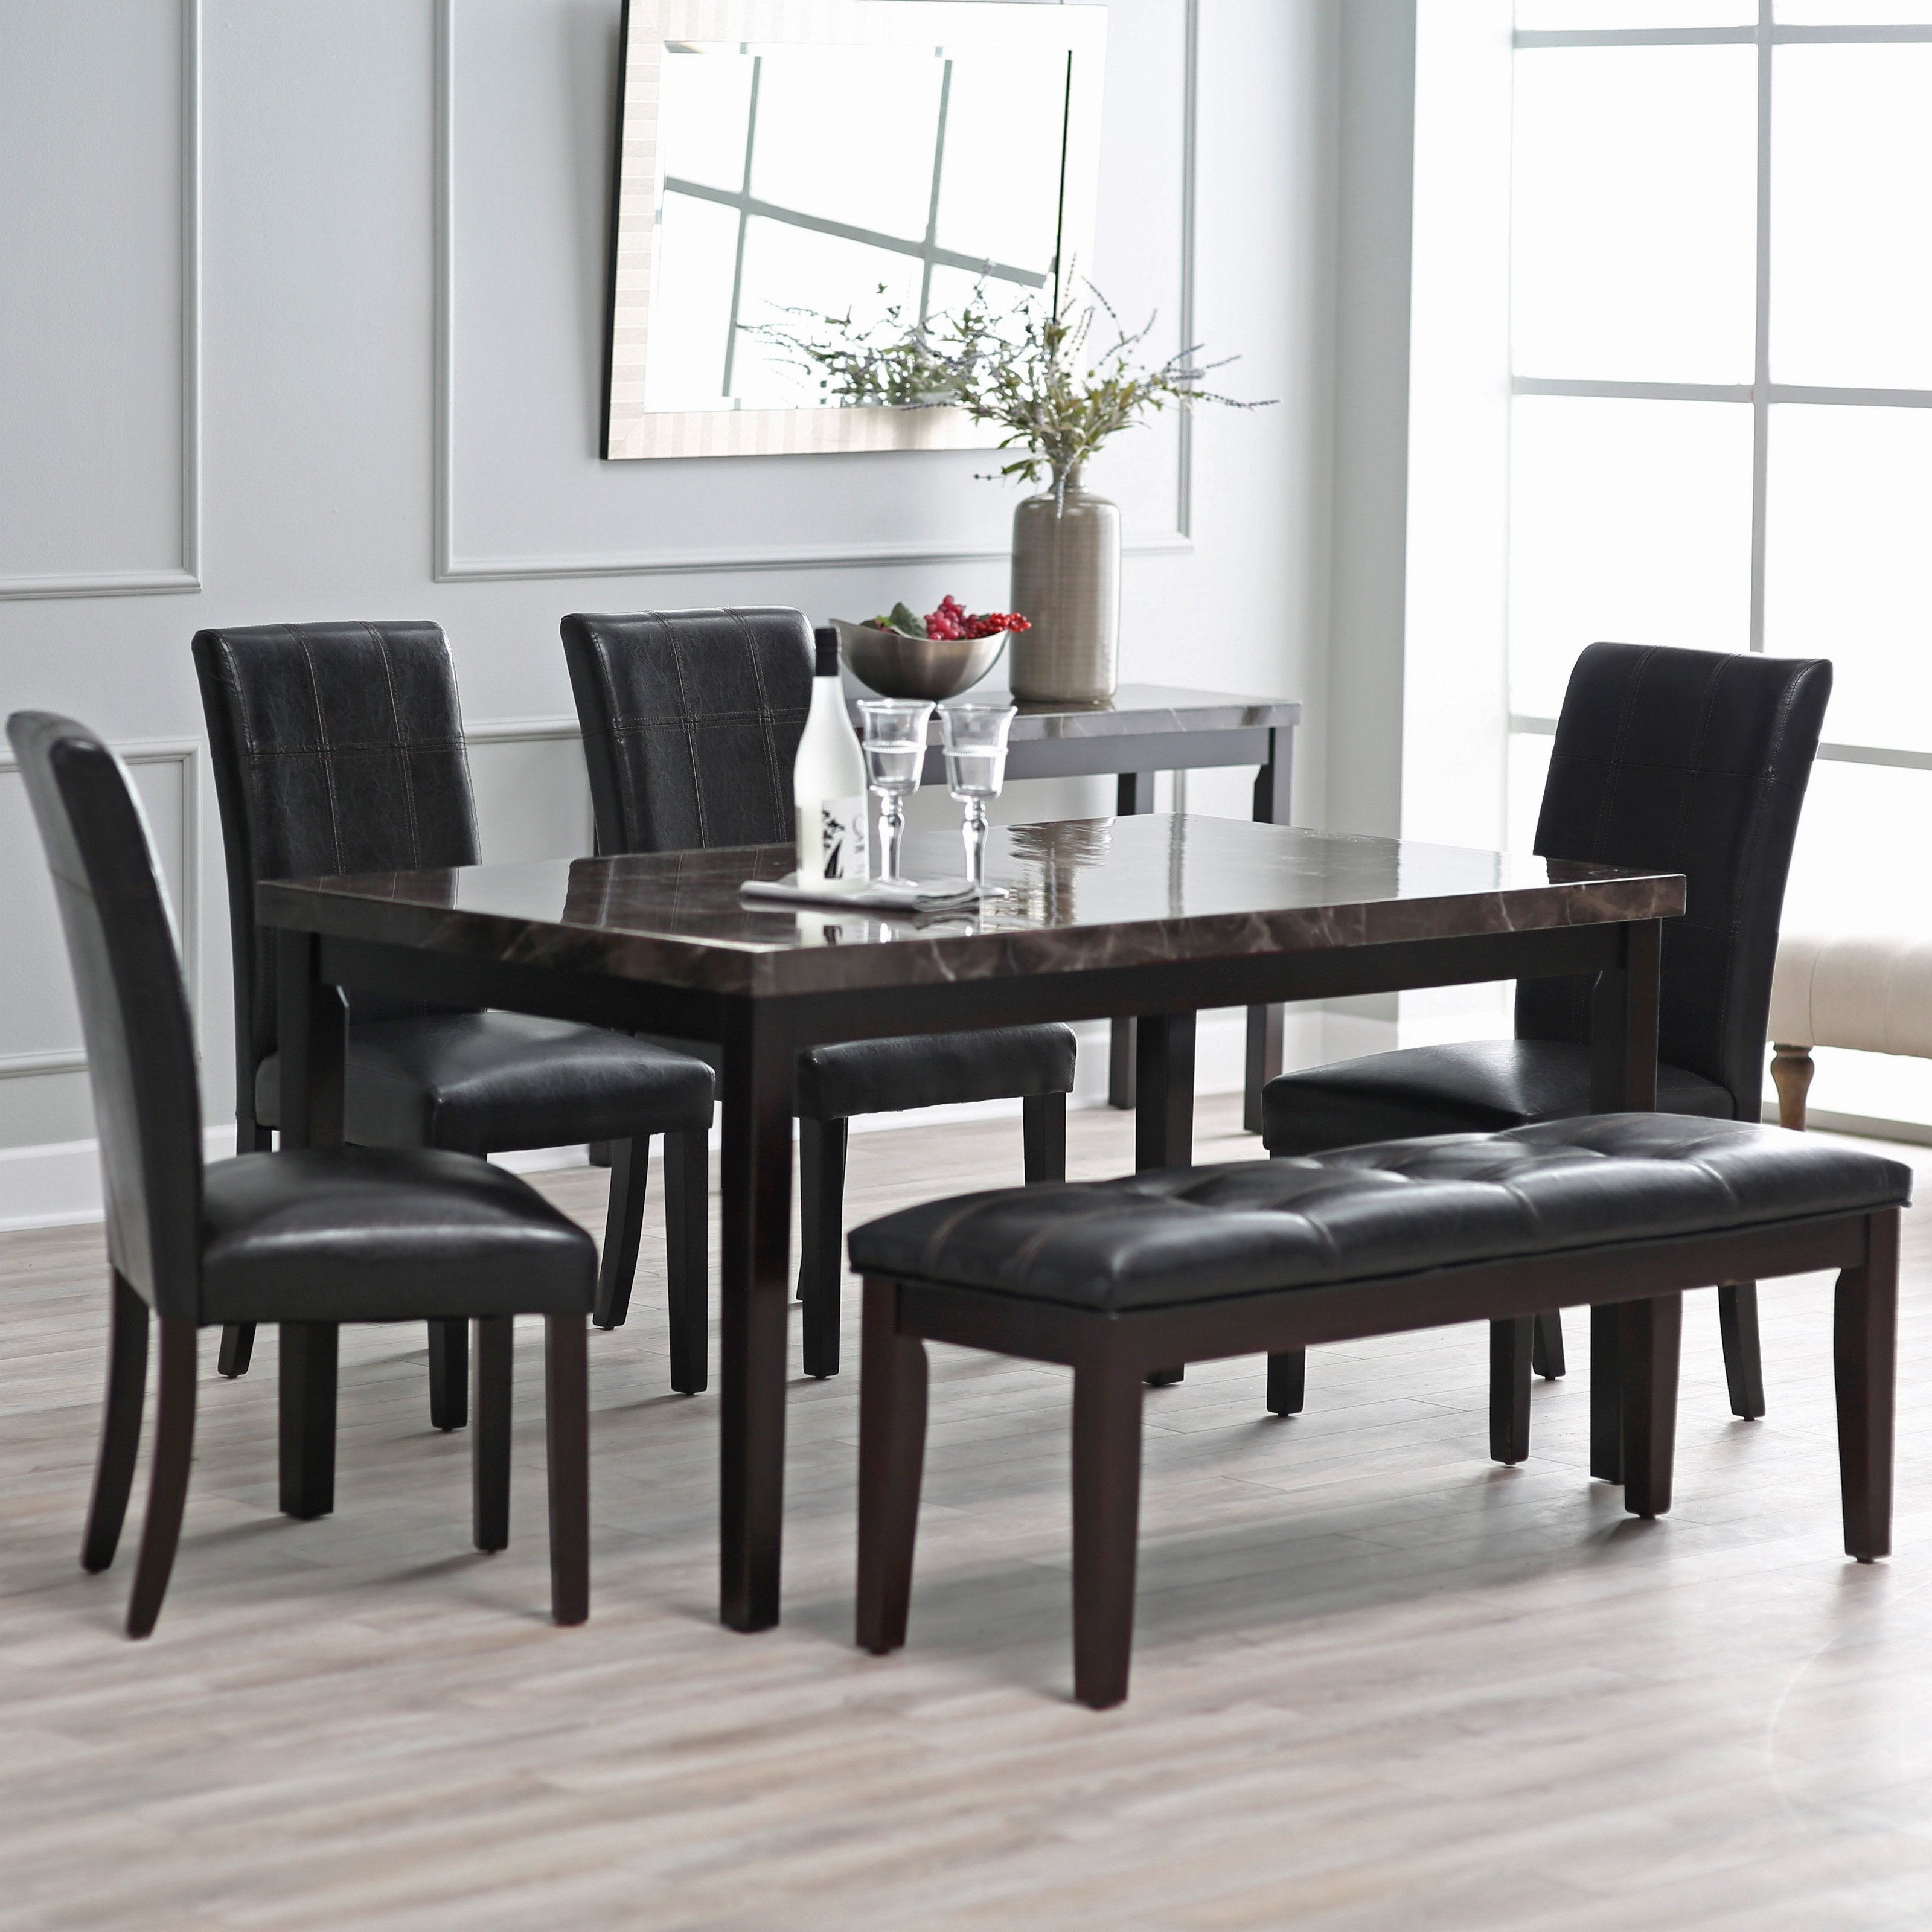 Dining Tables Sets With Most Recent Finley Home Milano 6 Piece Dining Table Set (Gallery 5 of 25)